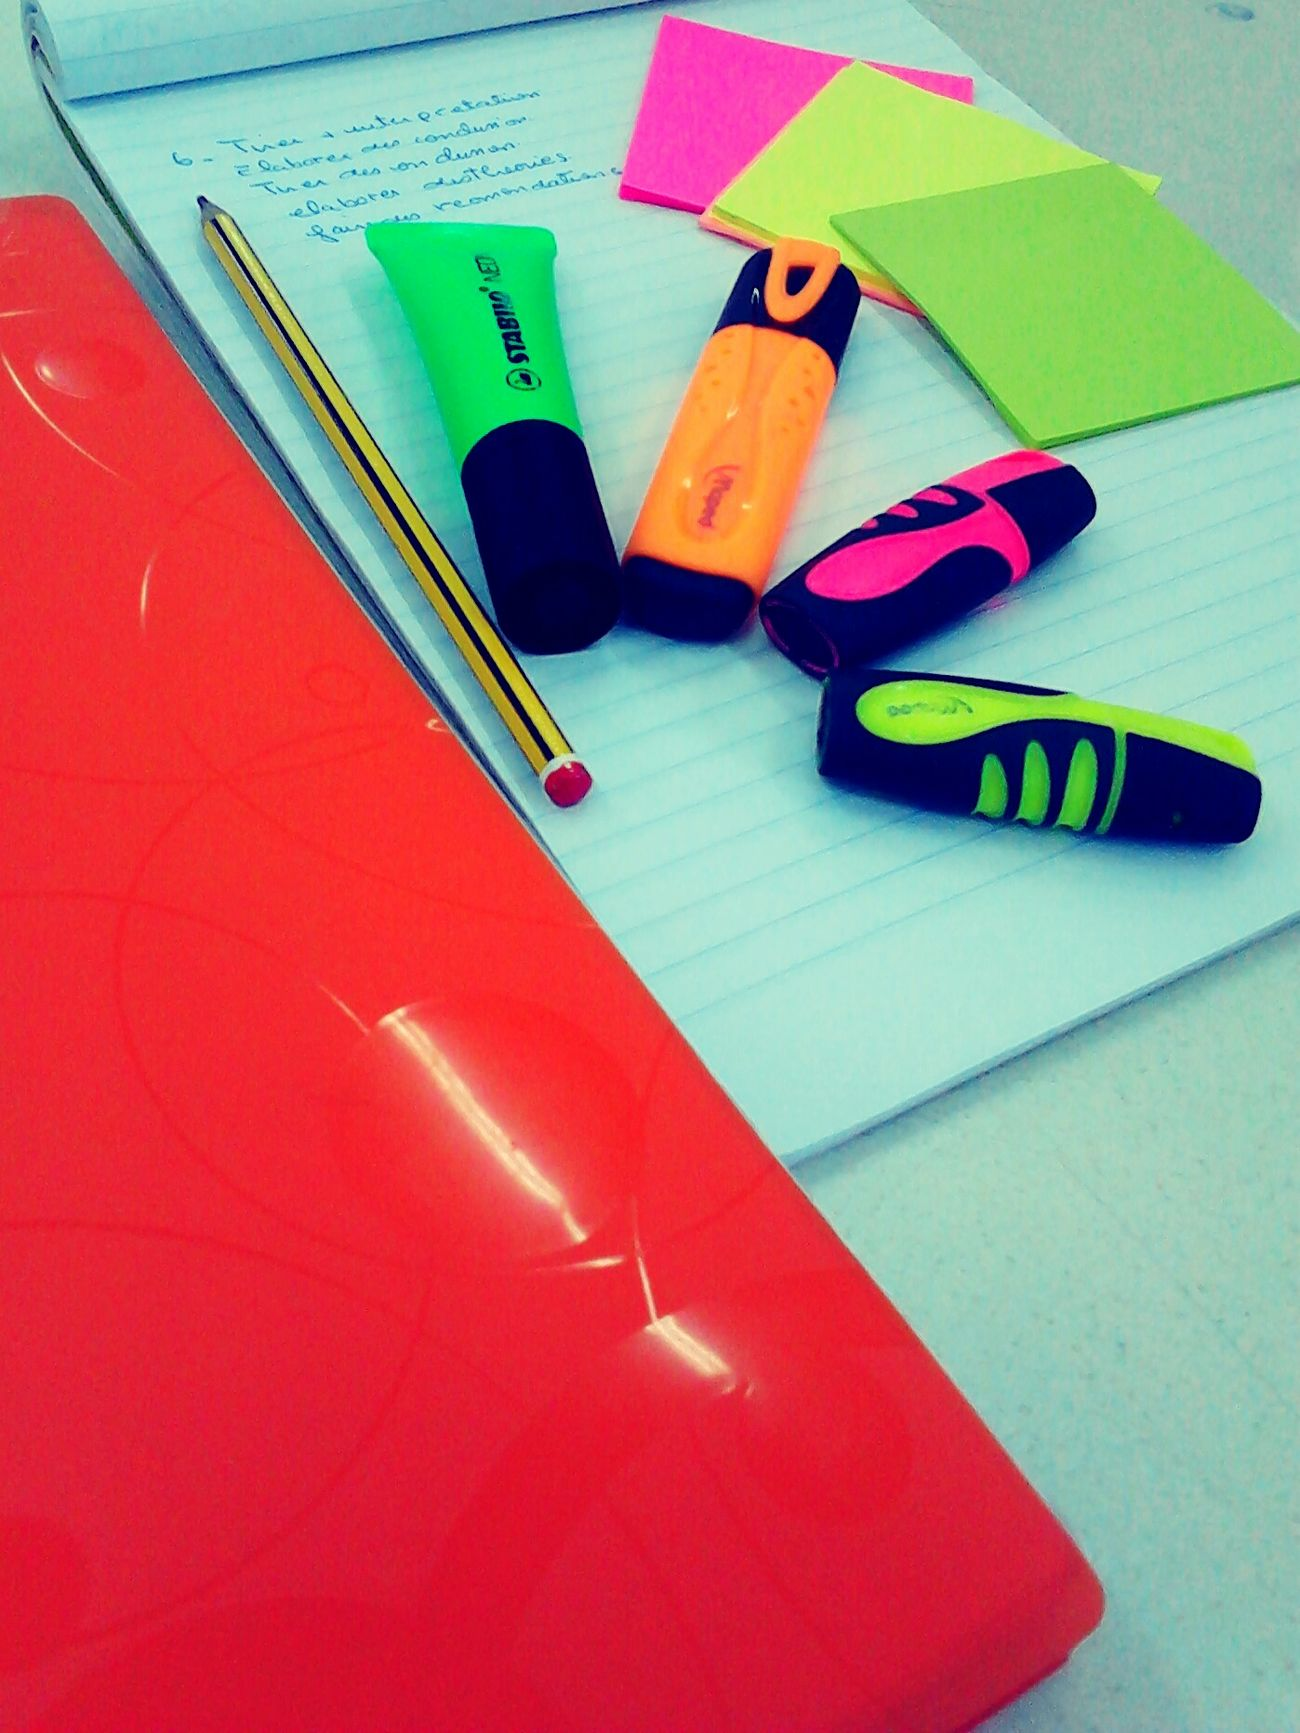 Desks From Above Studying Classroom Fluo